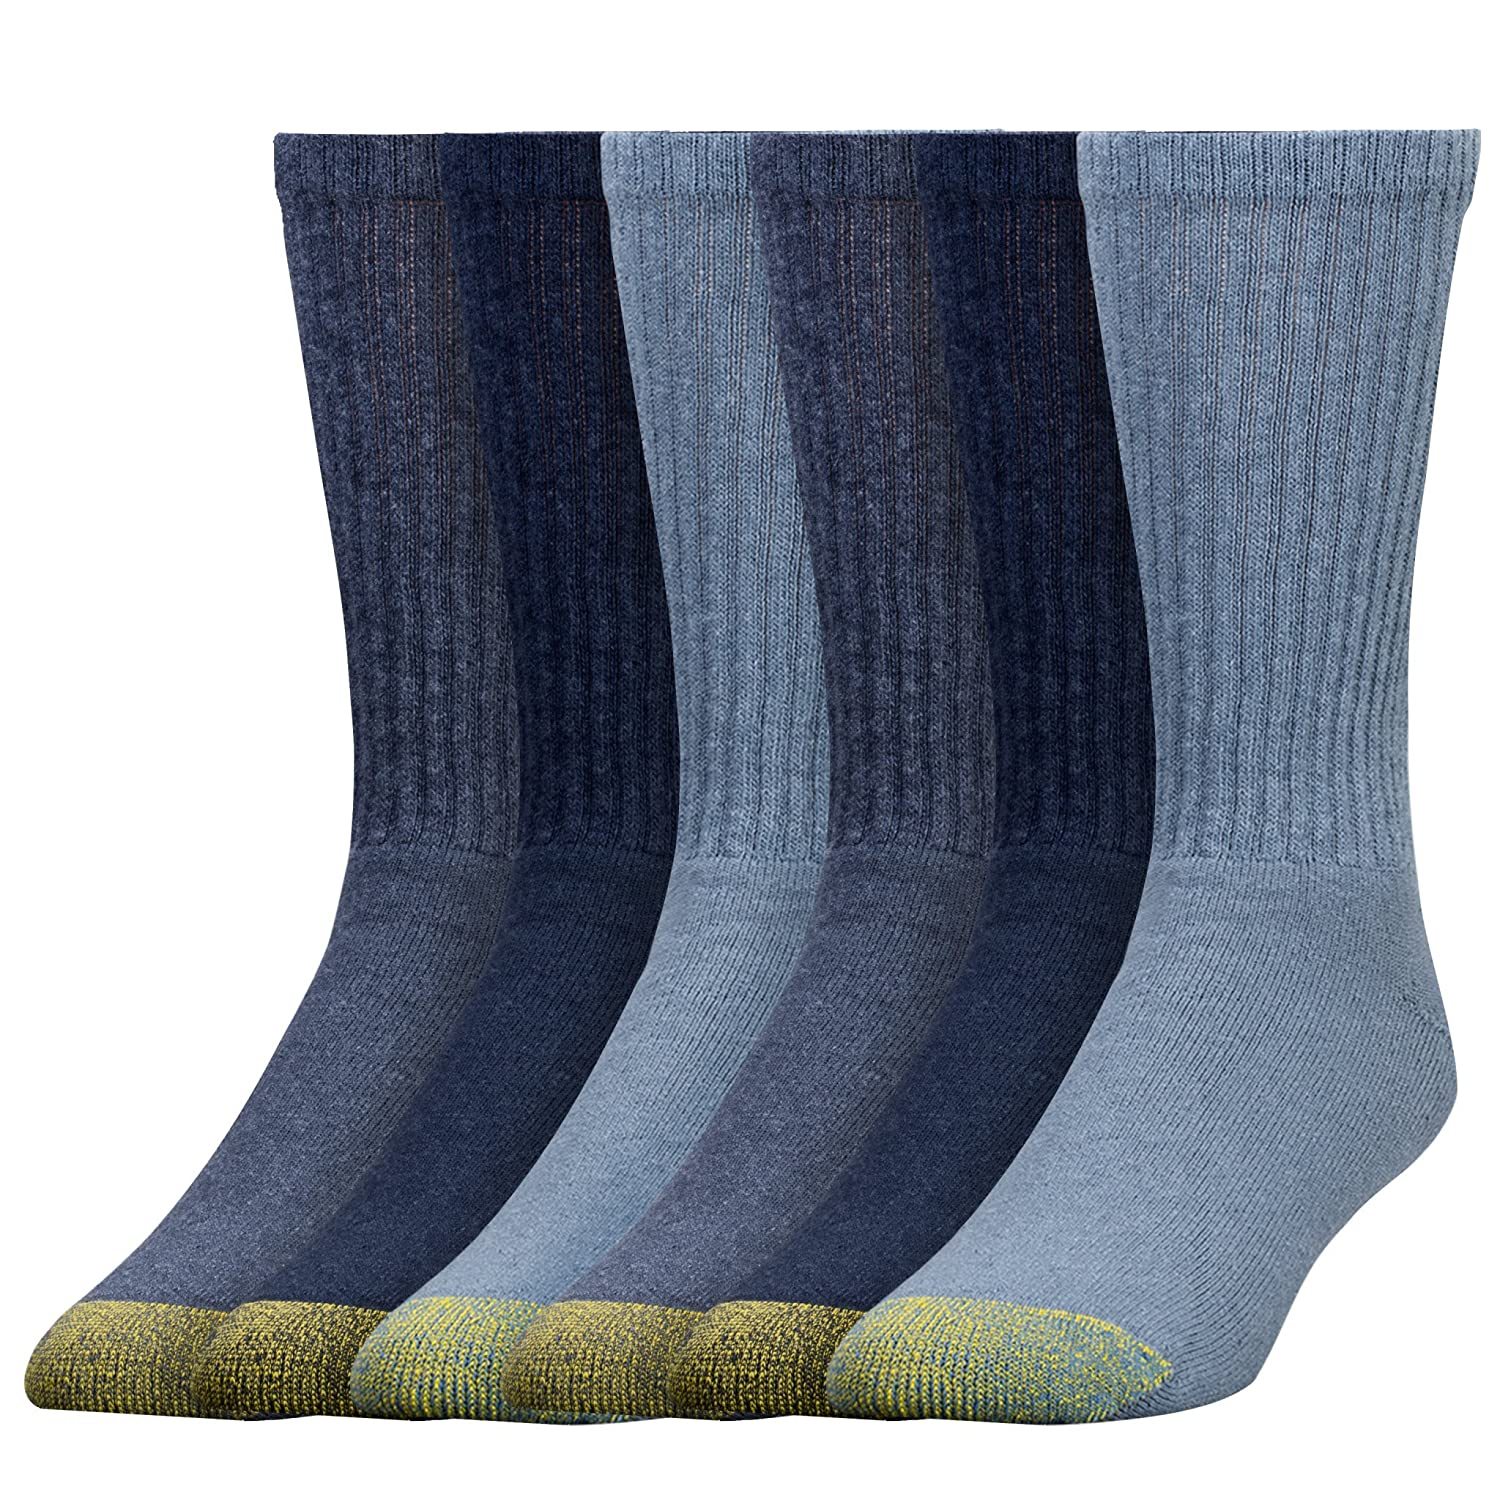 Gold Toe Men's Cotton Crew Athletic Sock 6-Pack 656S